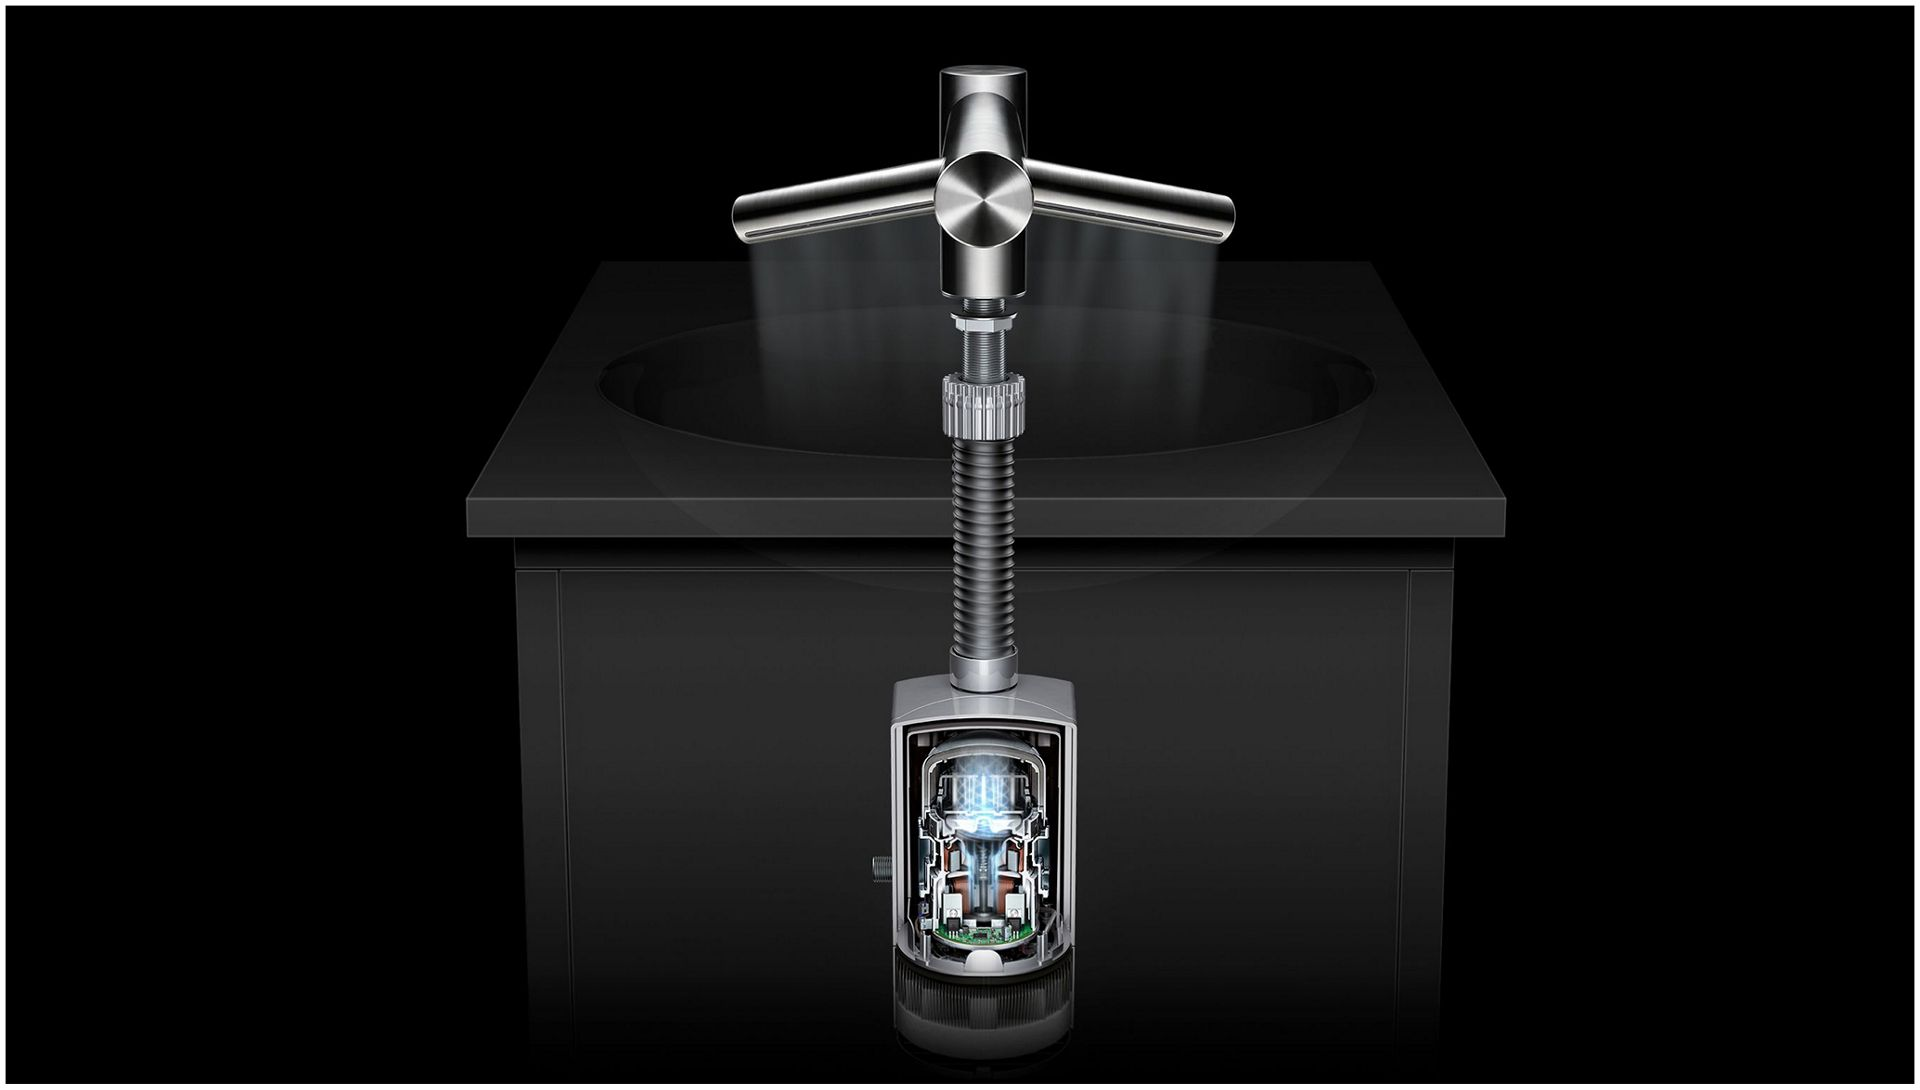 The Dyson Airblade Wash+Dry tap with the motor exposed